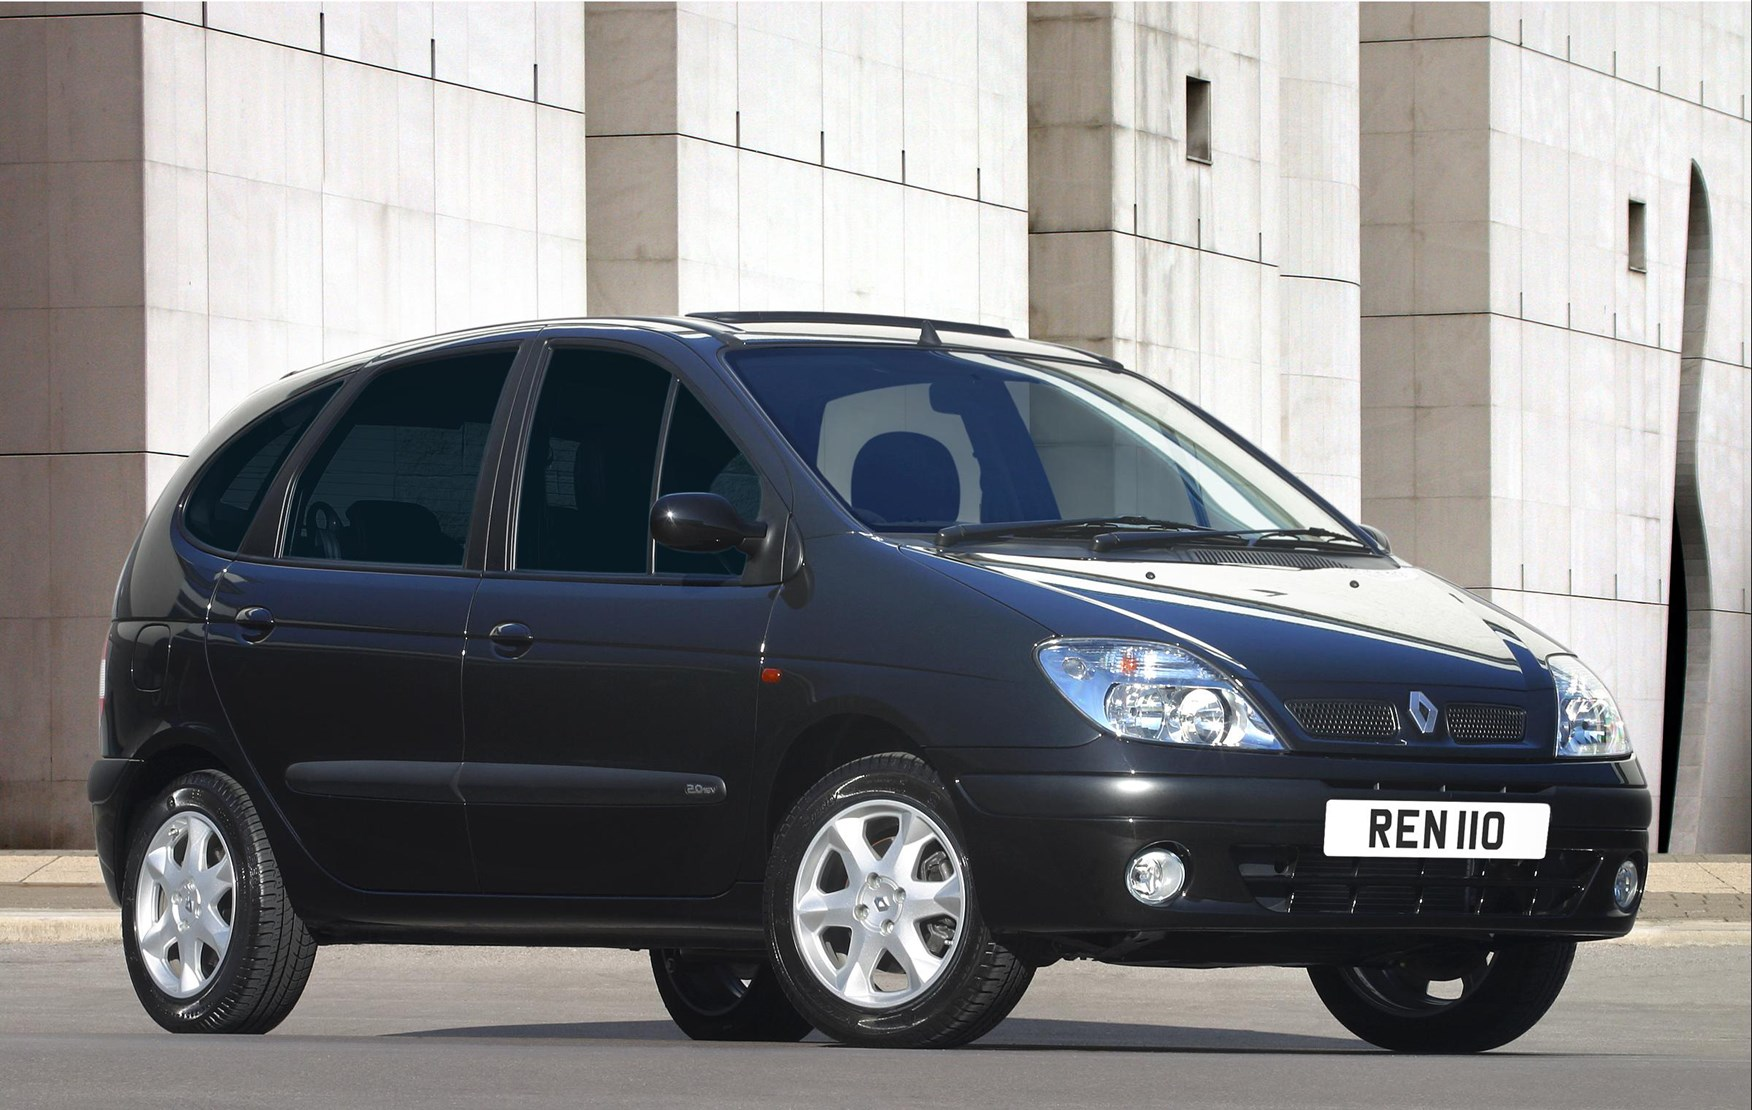 How Much Is Tax >> Renault Scenic Estate (1999 - 2003) Photos | Parkers